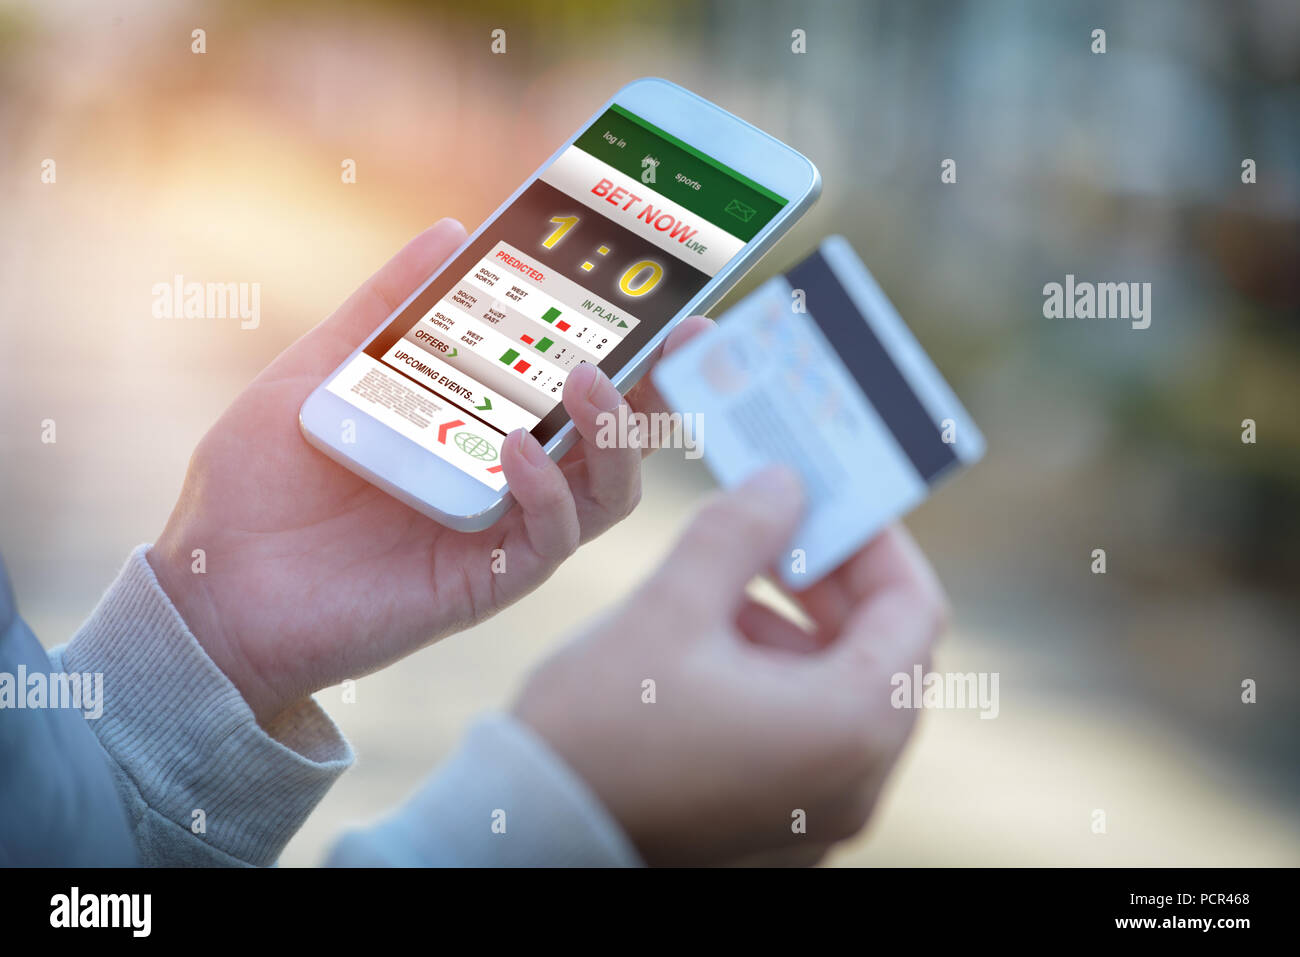 Betting on sports, holding smart phone with working online betting mobile application - Stock Image